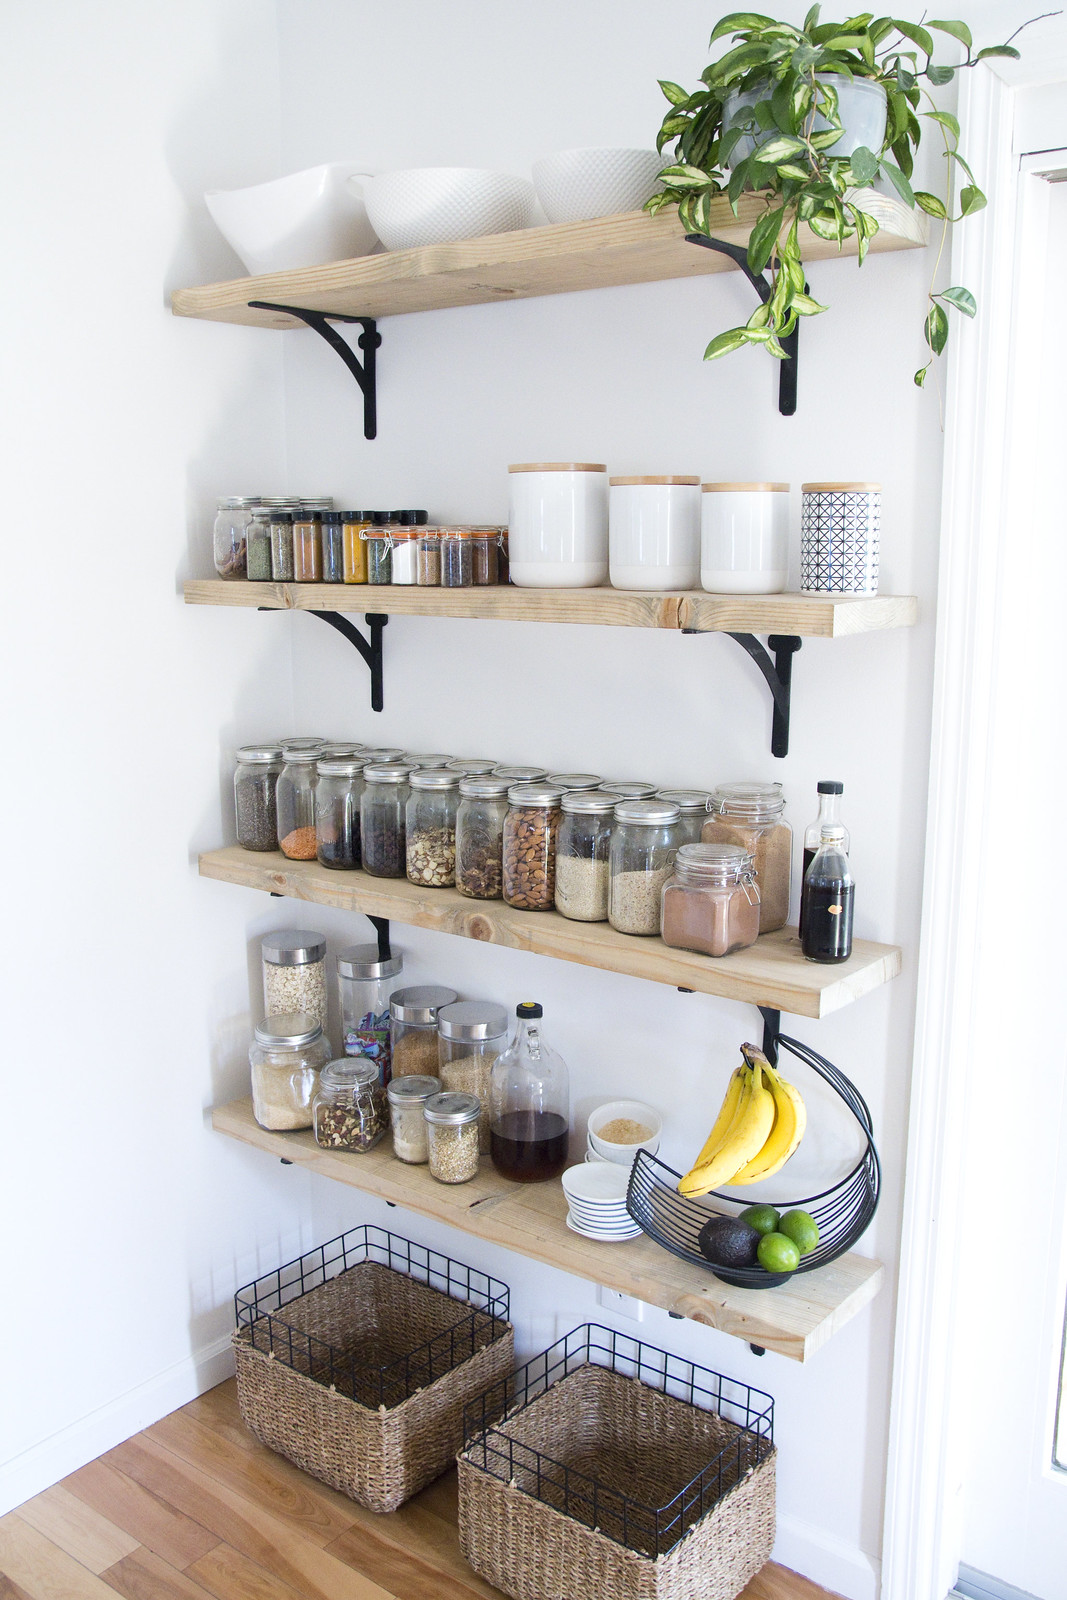 8 tips For Creating Successful Open Shelving and a pantry Jen